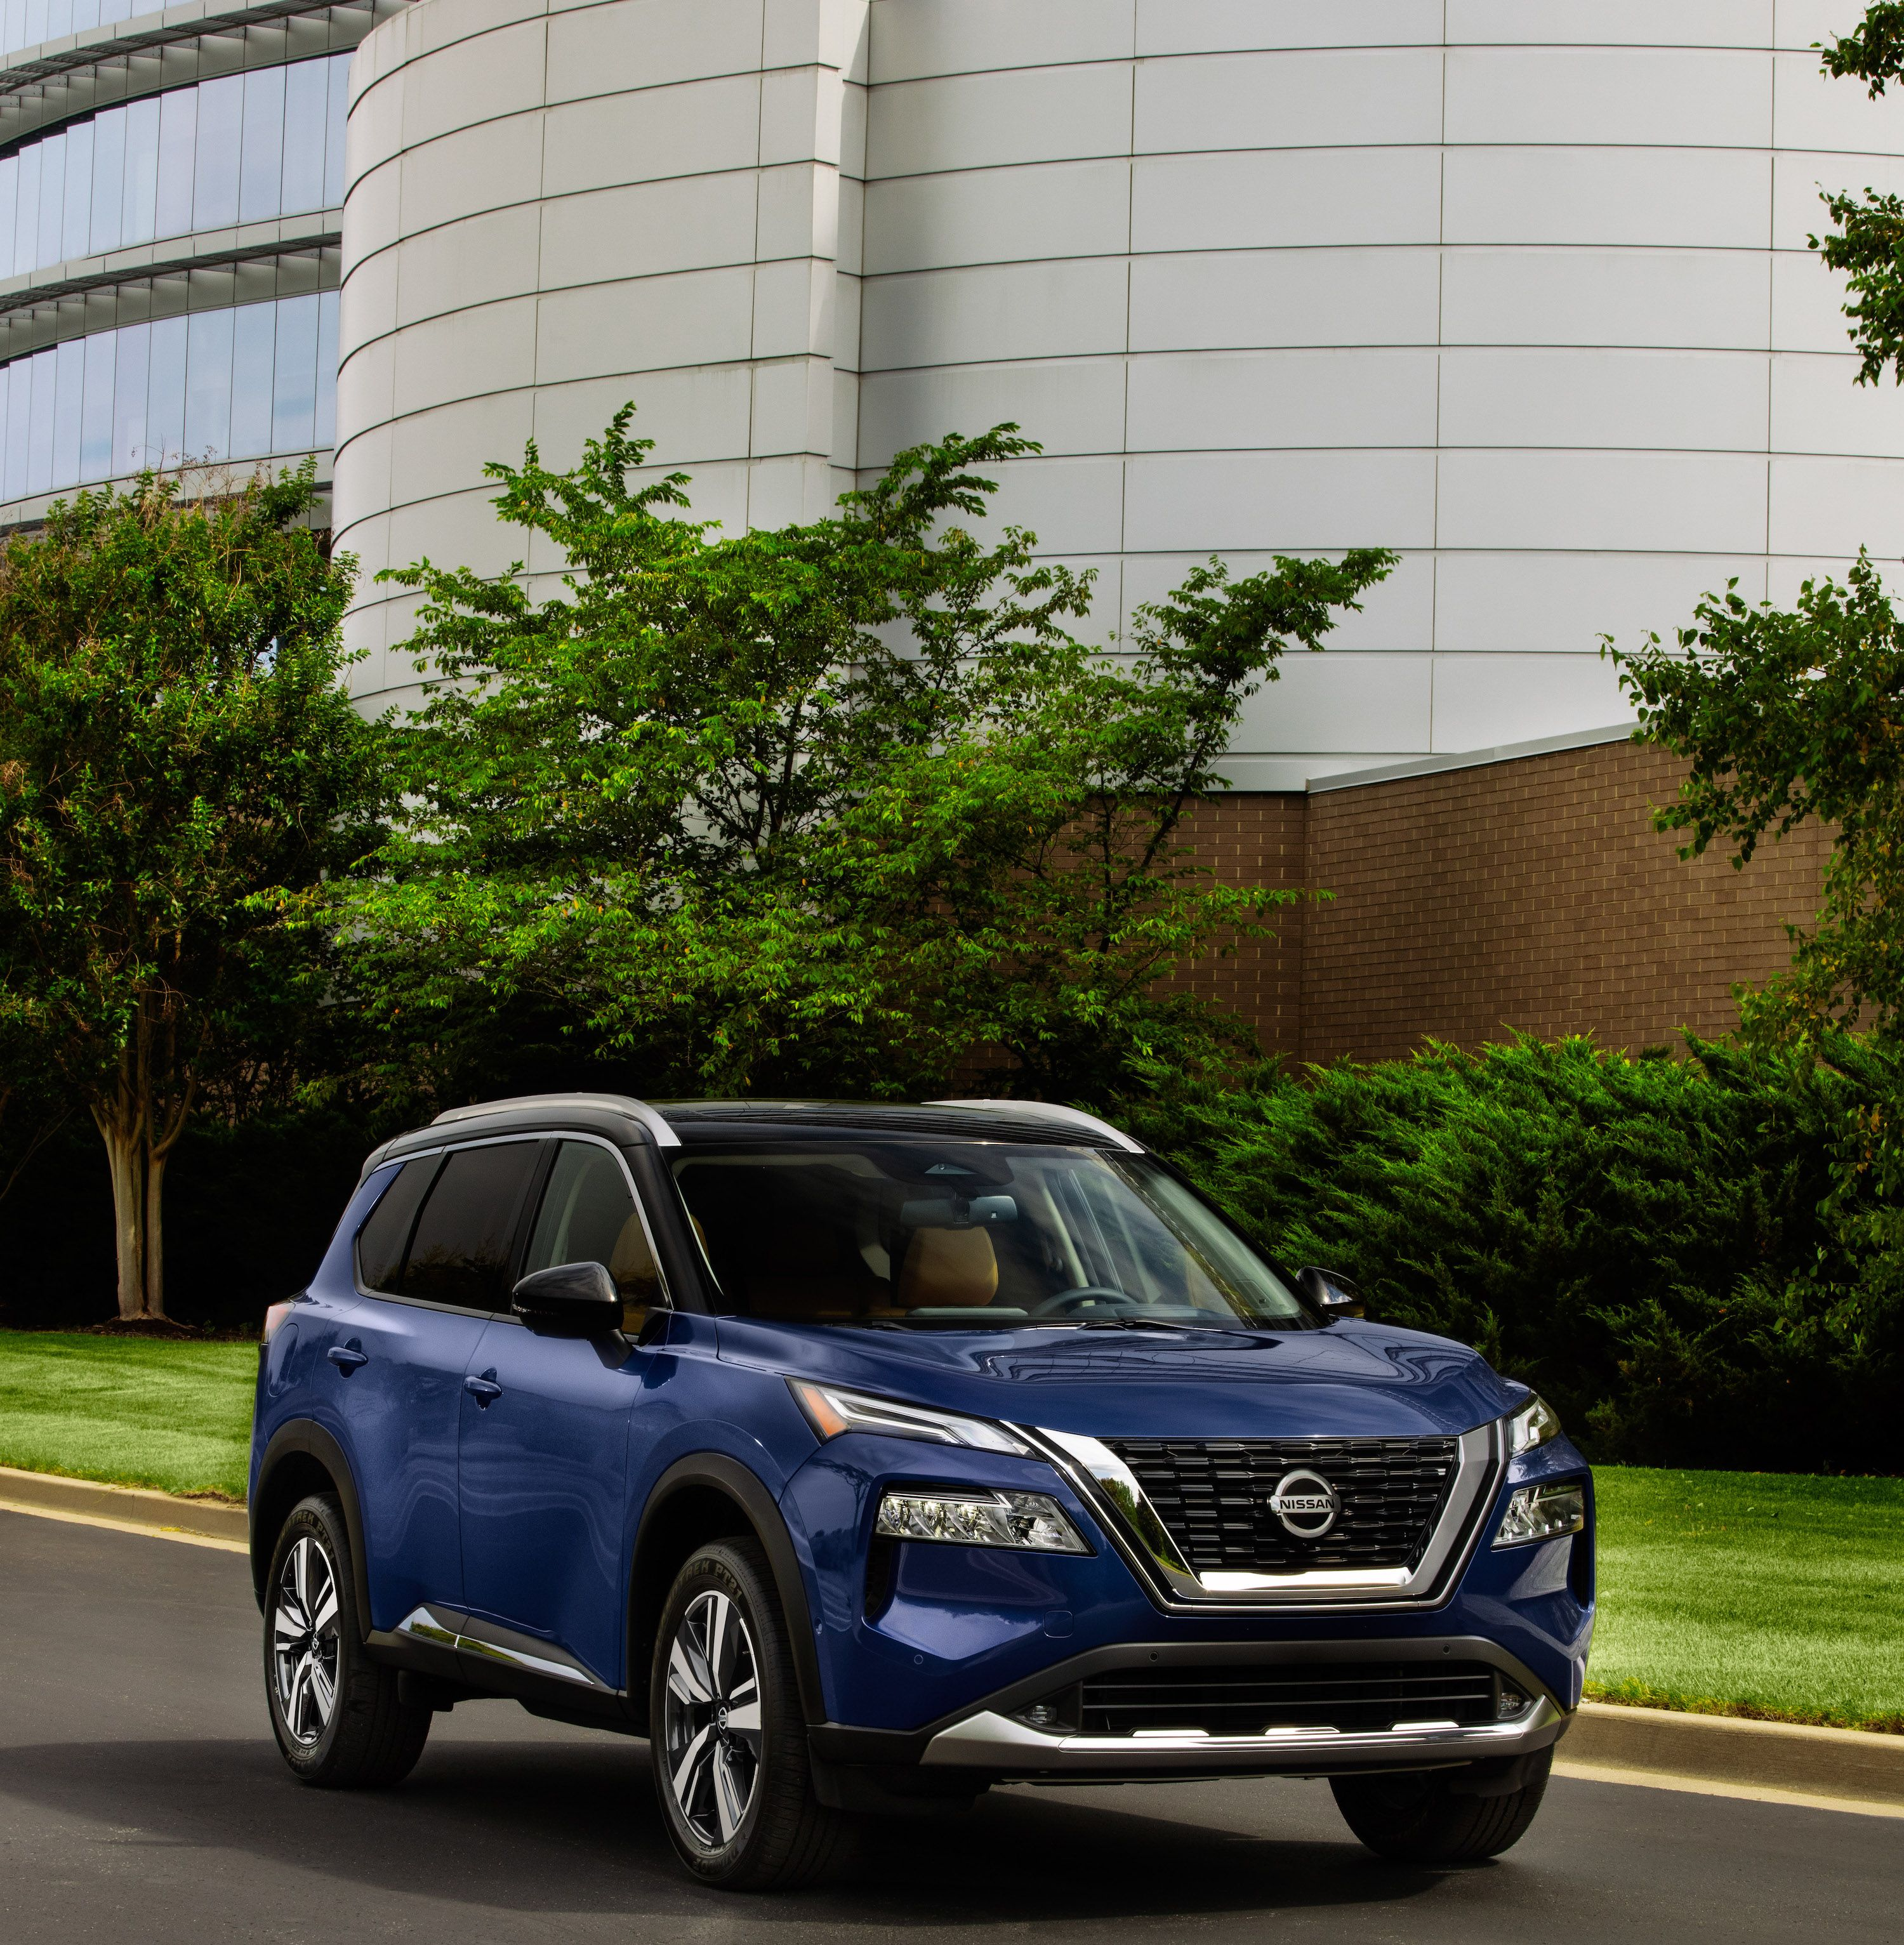 The All New Nissan Rogue Is A Surprising Improvement